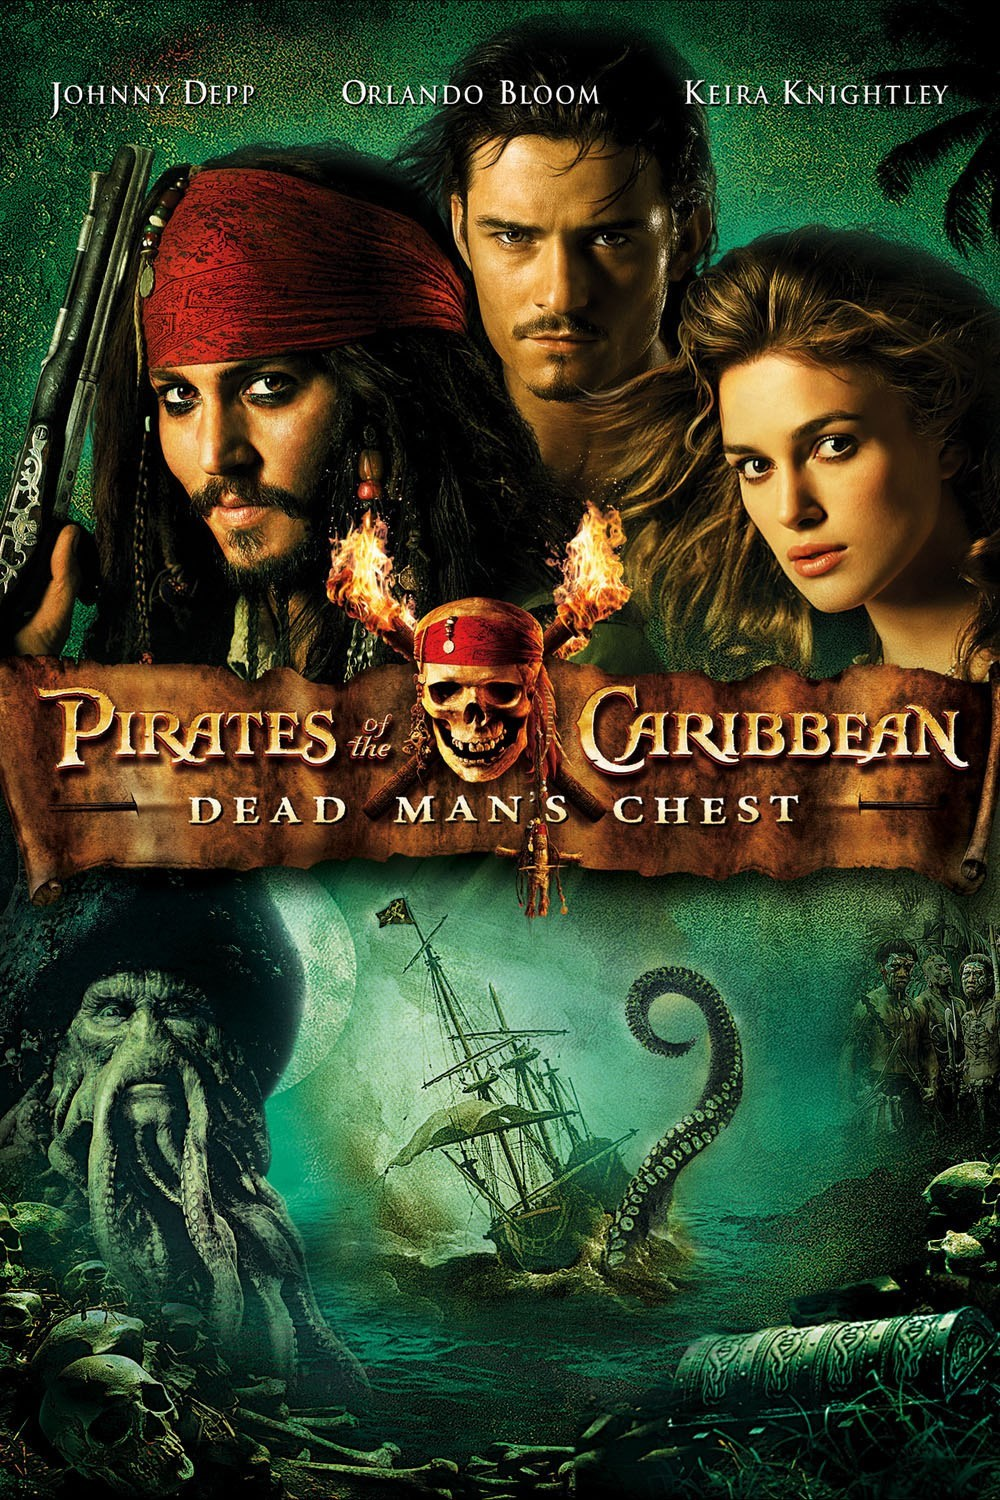 Pirates of the Caribbean: Dead Man's Chest 2006 - Full (HD)